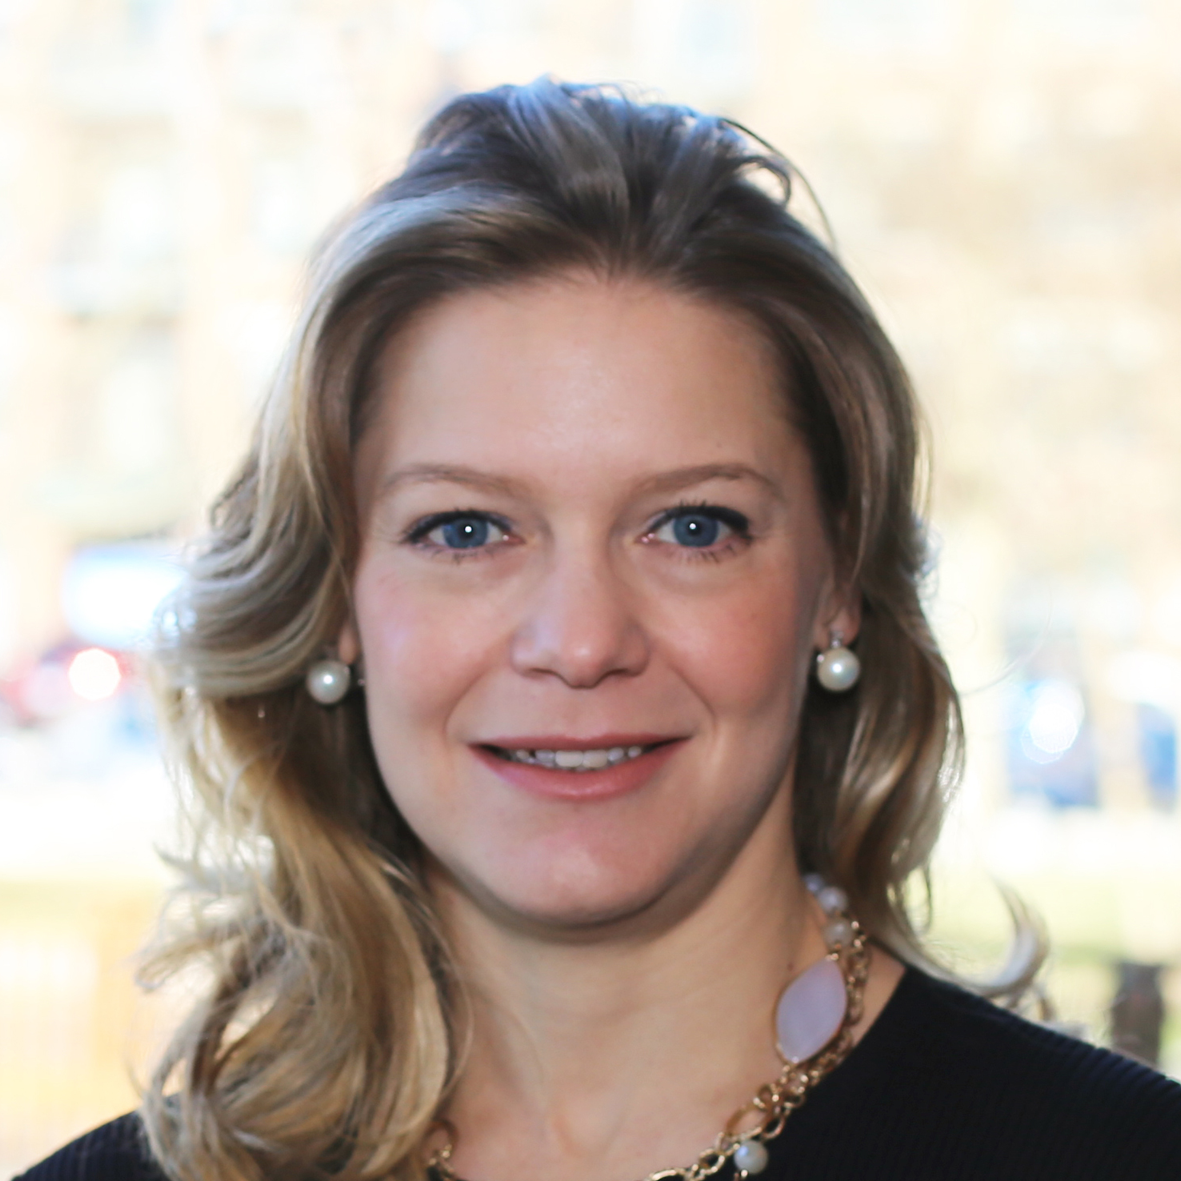 Georgina Guy   Head of International Strategic Advisory, Brown Advisory   Georgina is responsible for Brown Advisory's international strategic advisory capabilities. Prior to joining Brown Advisory she was a Director at EY in the Wealth and Asset Management tax team where she worked with ultra-high net worth individuals and their families (both UK domiciled and non-UK domiciled), providing and co-ordinating tax advice on their complex investment structures, business operations and personal matters. Georgina has frequently collaborated with and worked alongside her clients' other advisers including their lawyers and trustees.